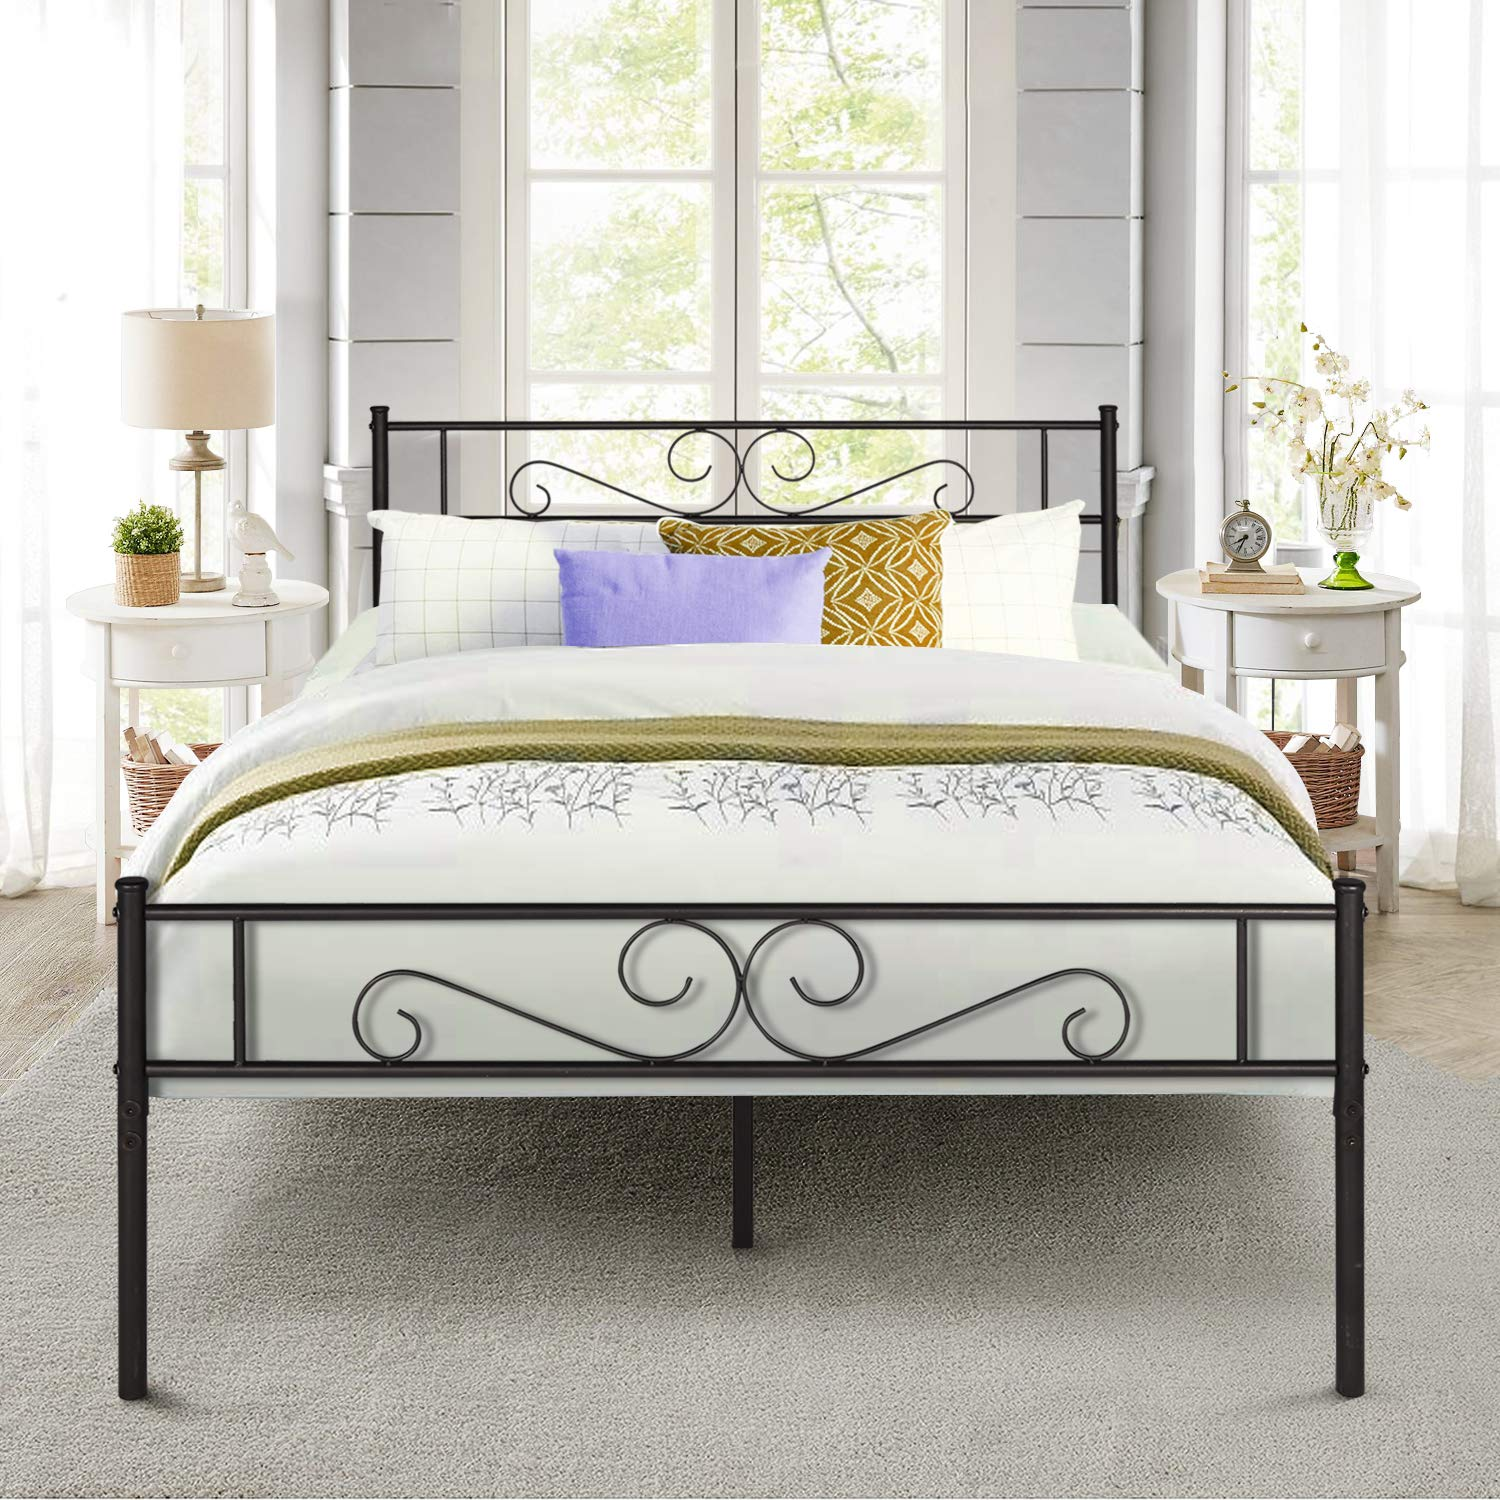 VECELO Bed Frame Mattress Foundation with Vintage Headboard Footboard, Easy Assembly, Queen, Black